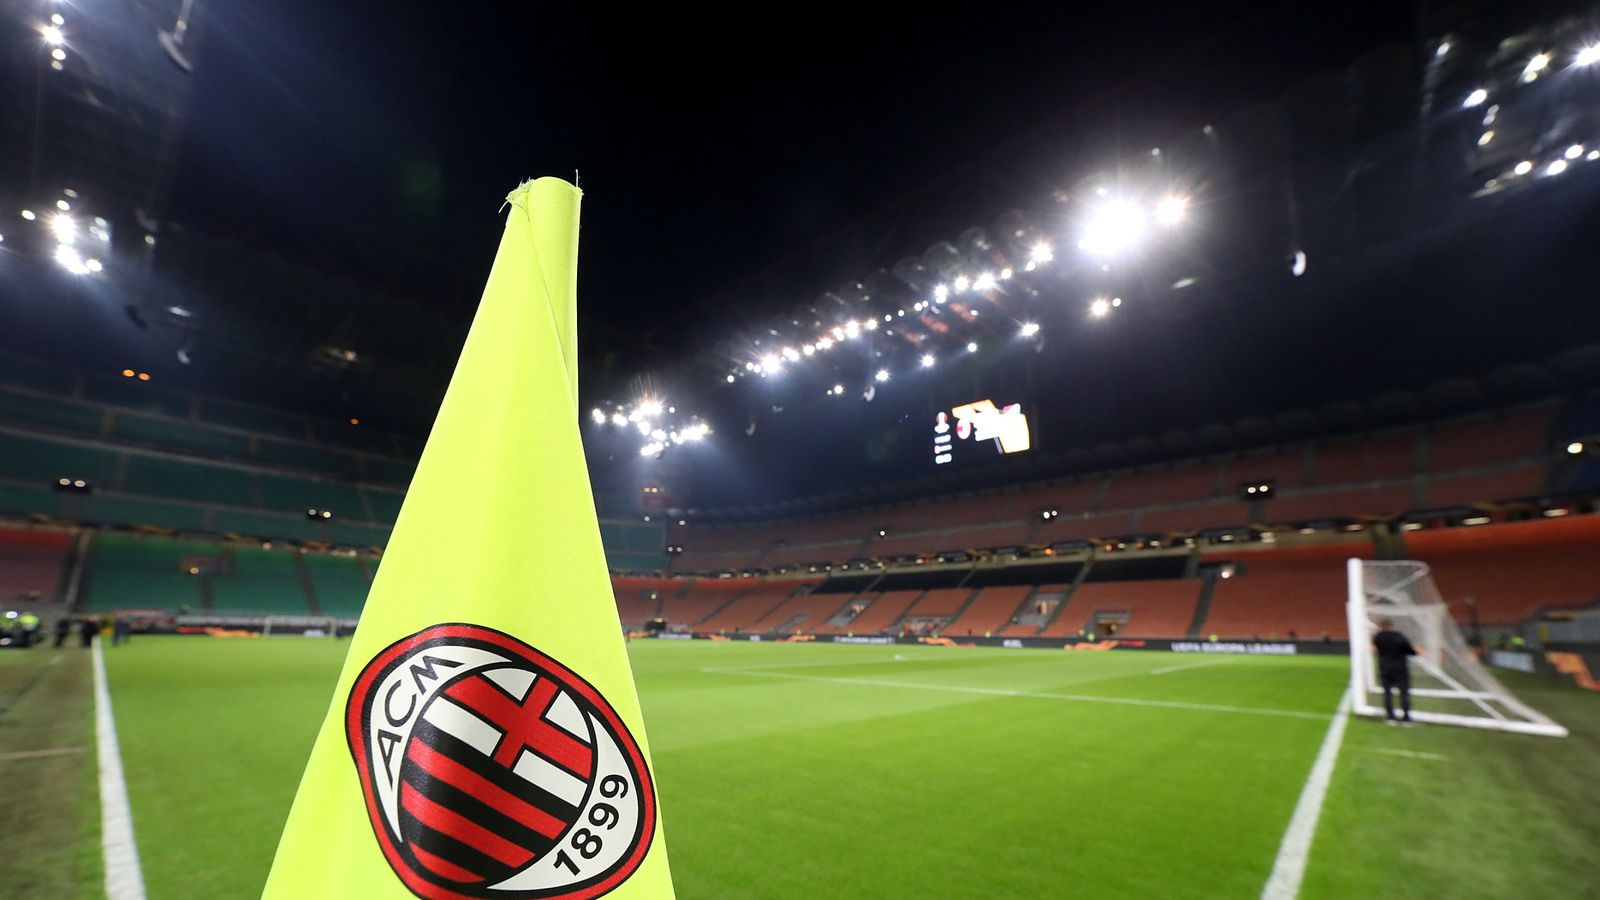 AC Milan excluded from 2019/20 Europa League over FFP